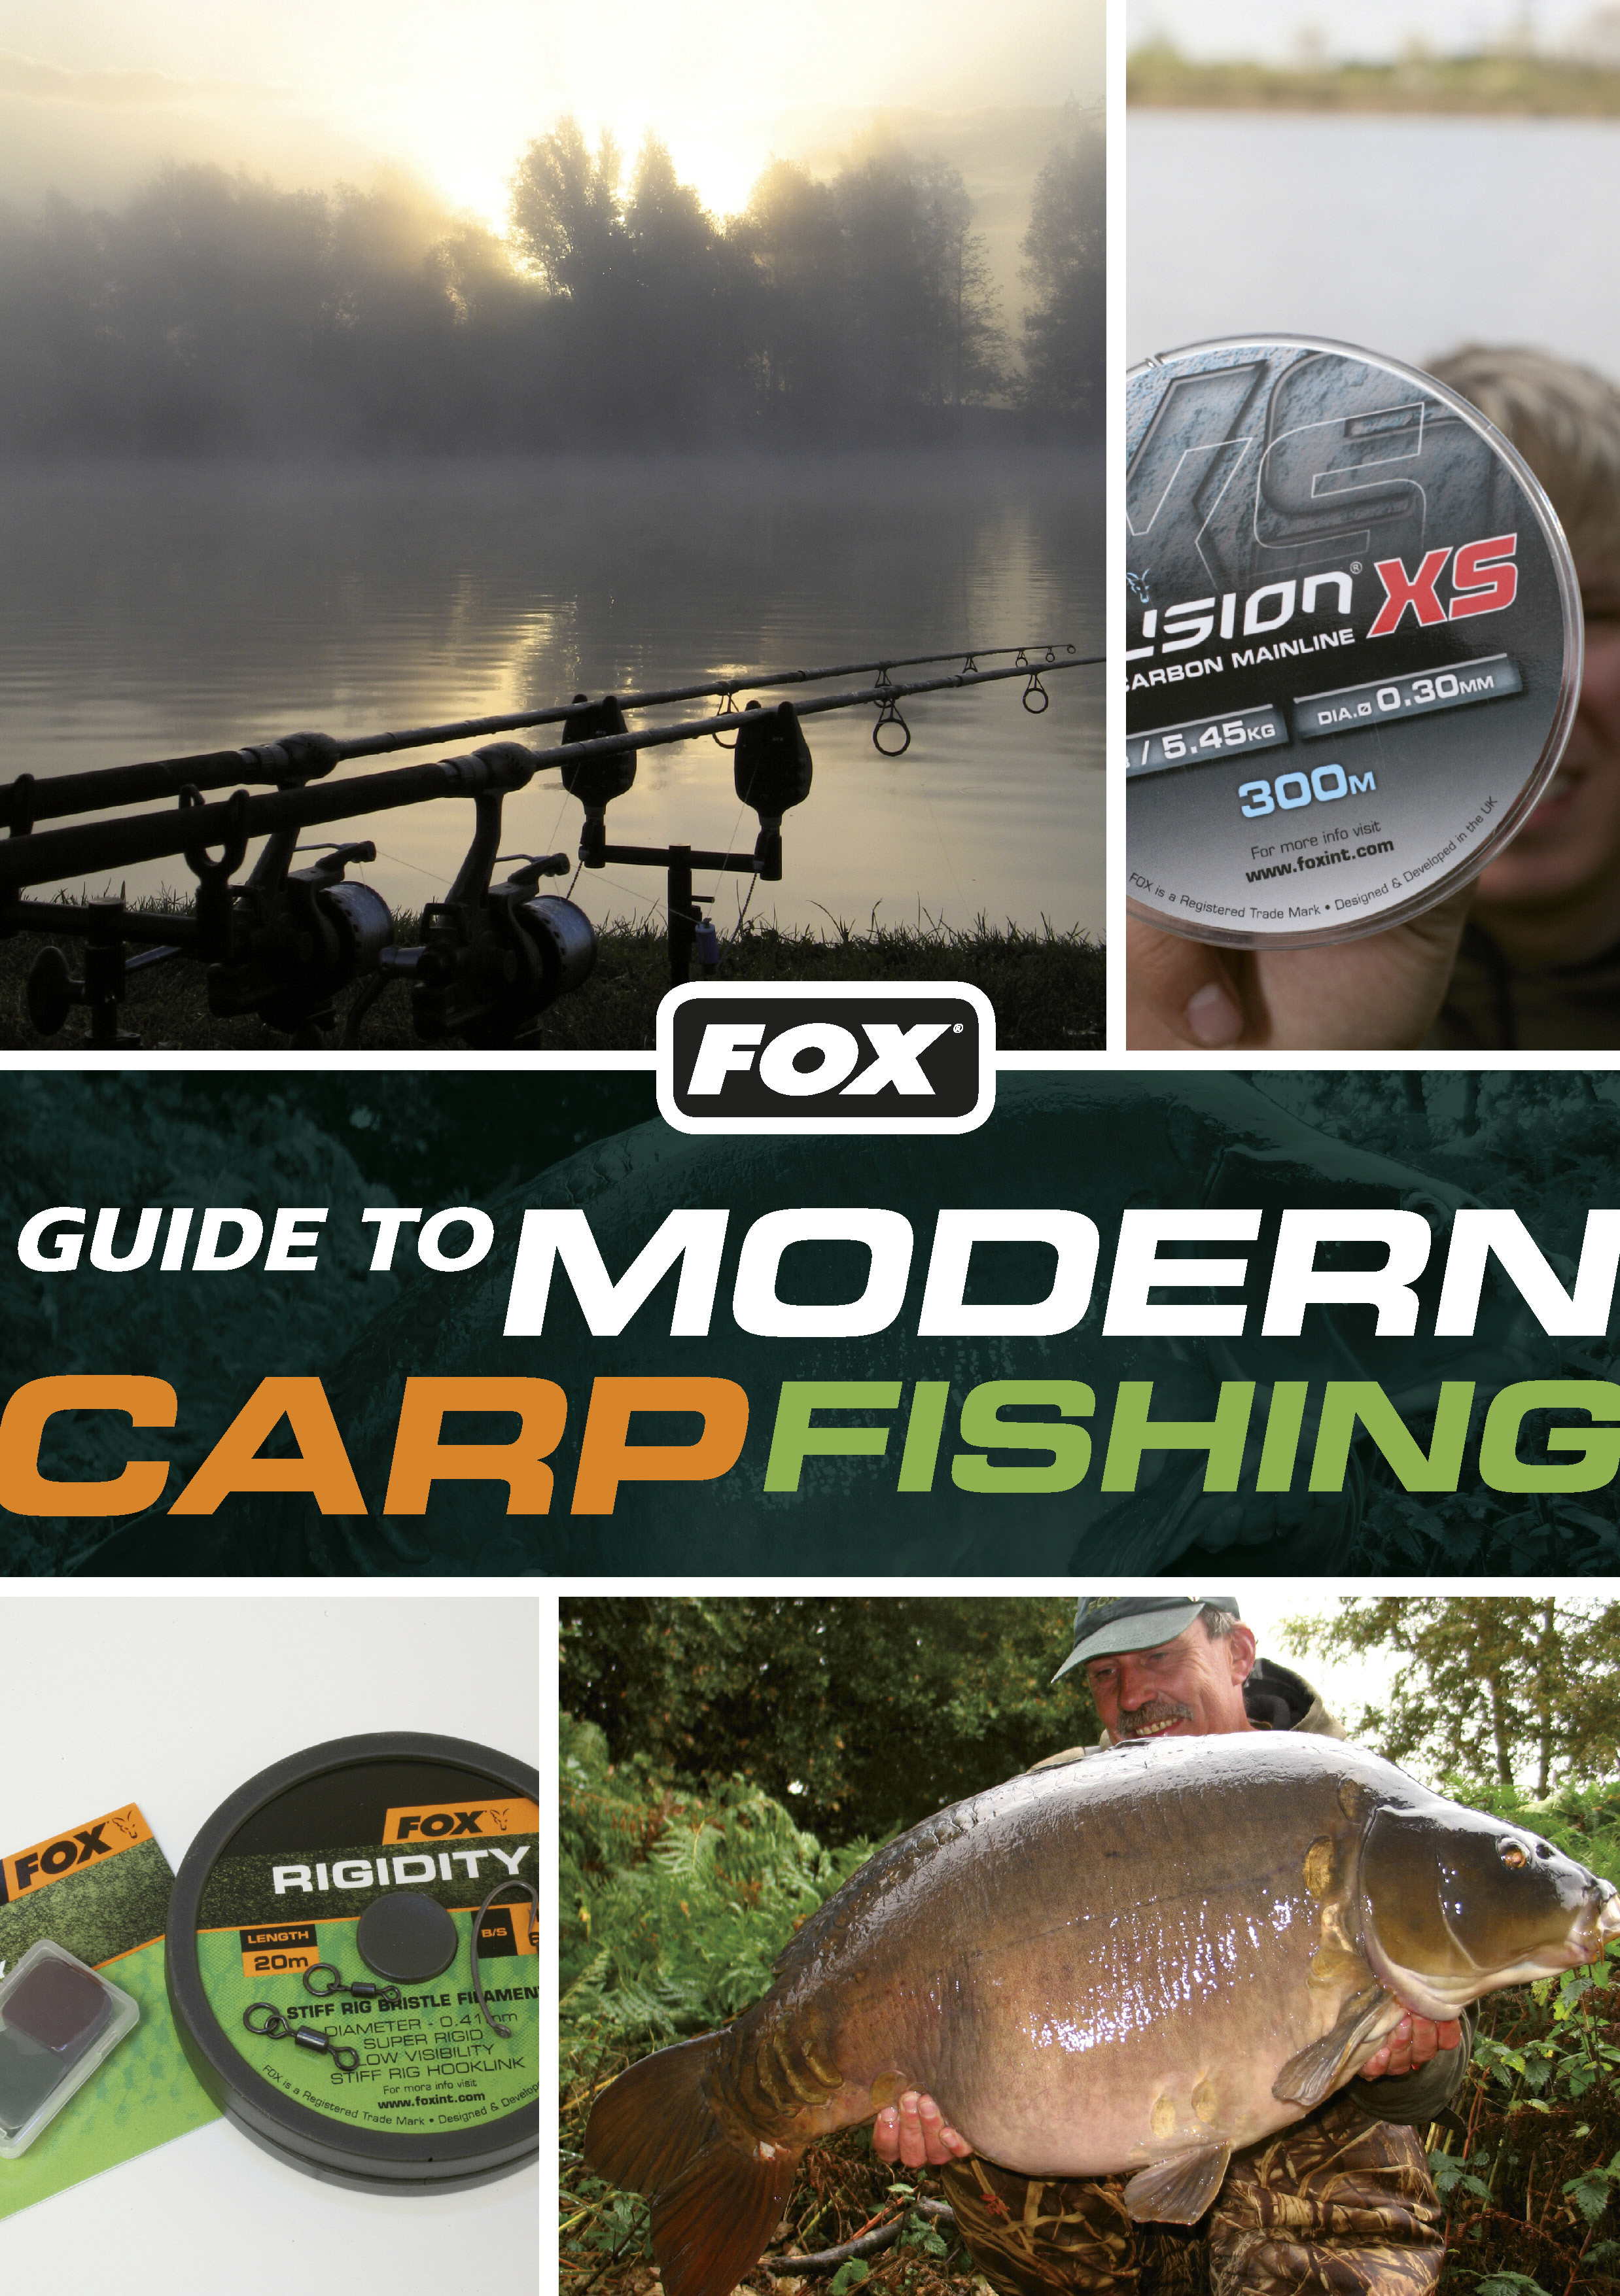 Fox guide to modern carp fishing paperback for Colorado fishing guide